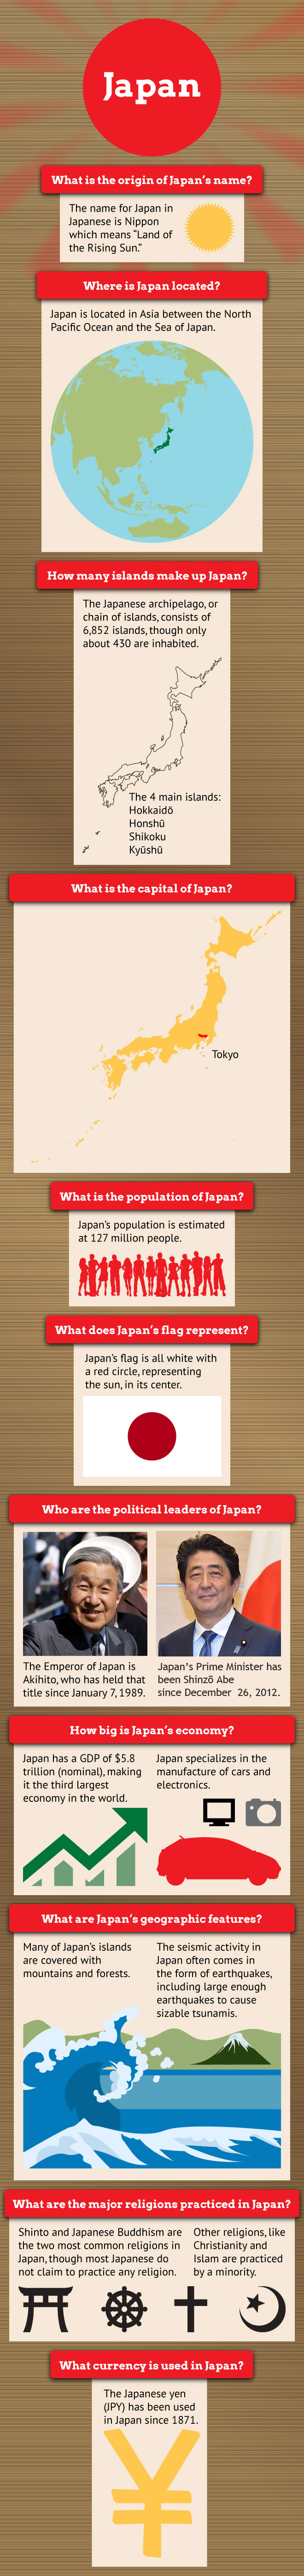 Infographic on Japan